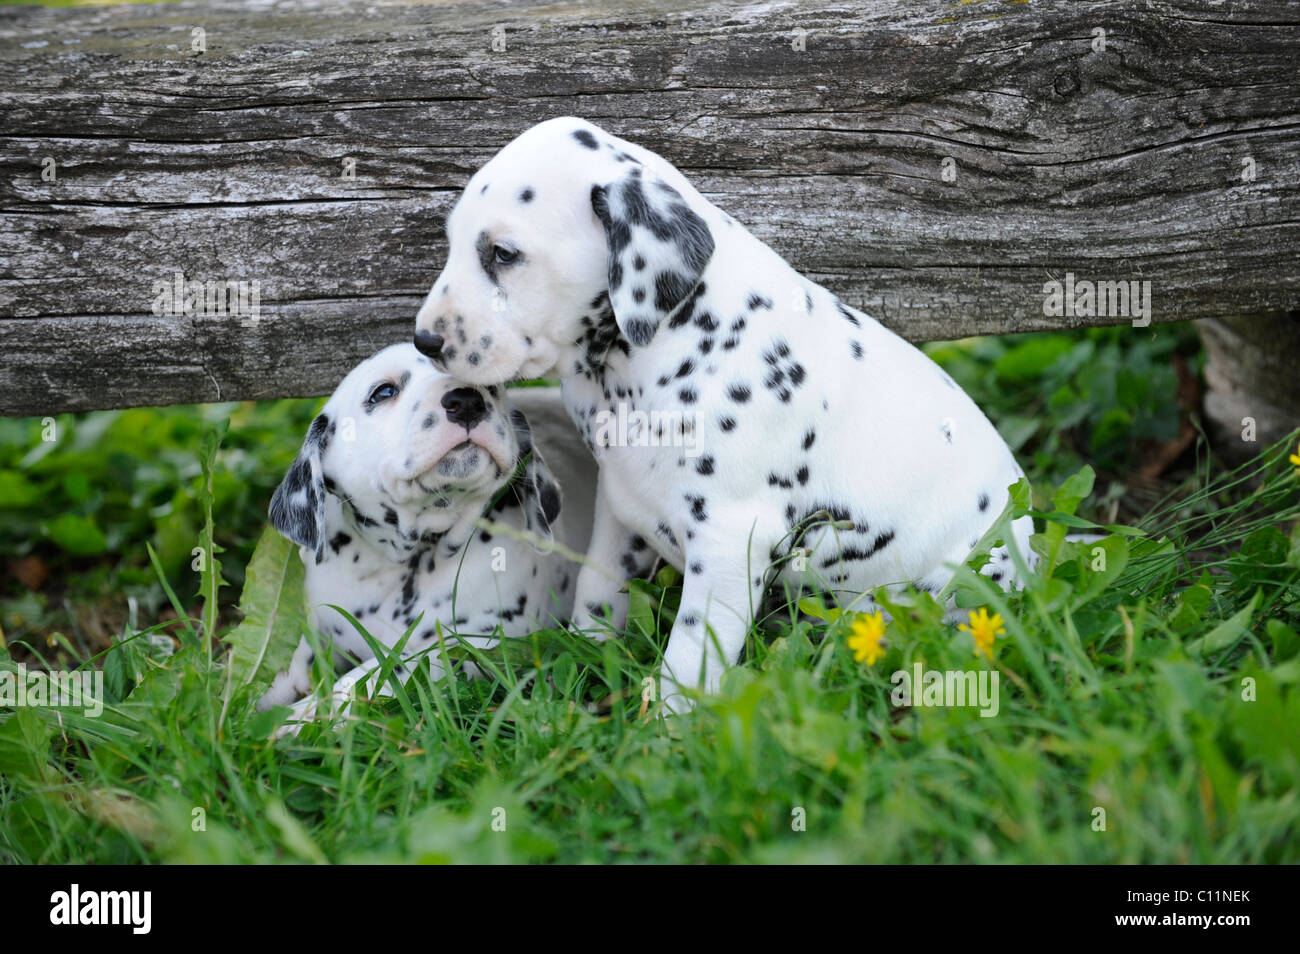 Two Dalmatian puppies - Stock Image